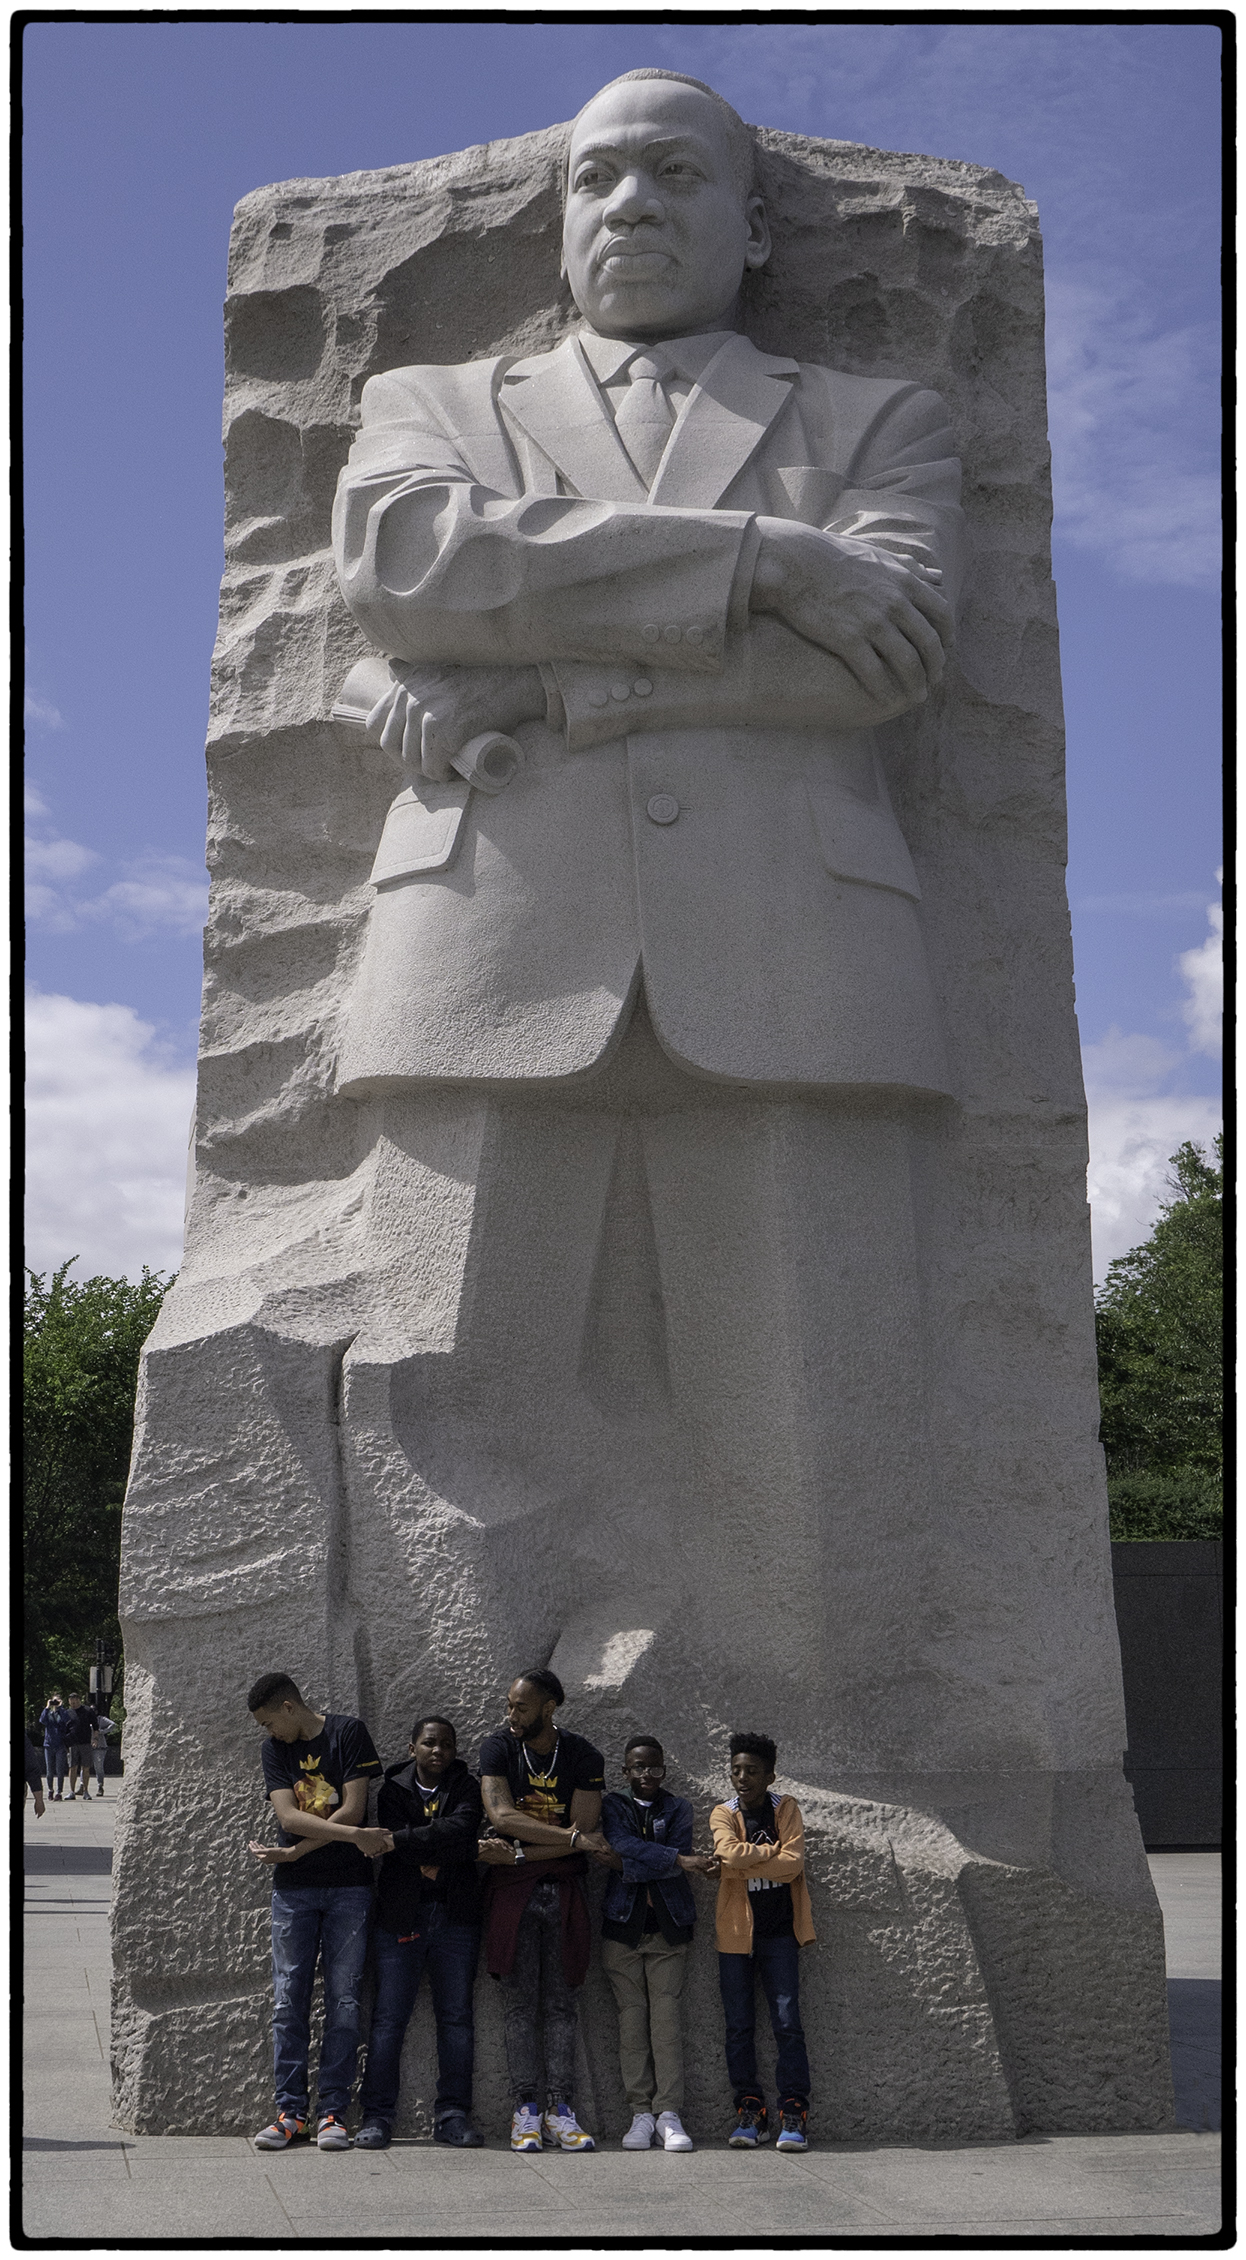 Martin Luther King Monument, Washington, DC